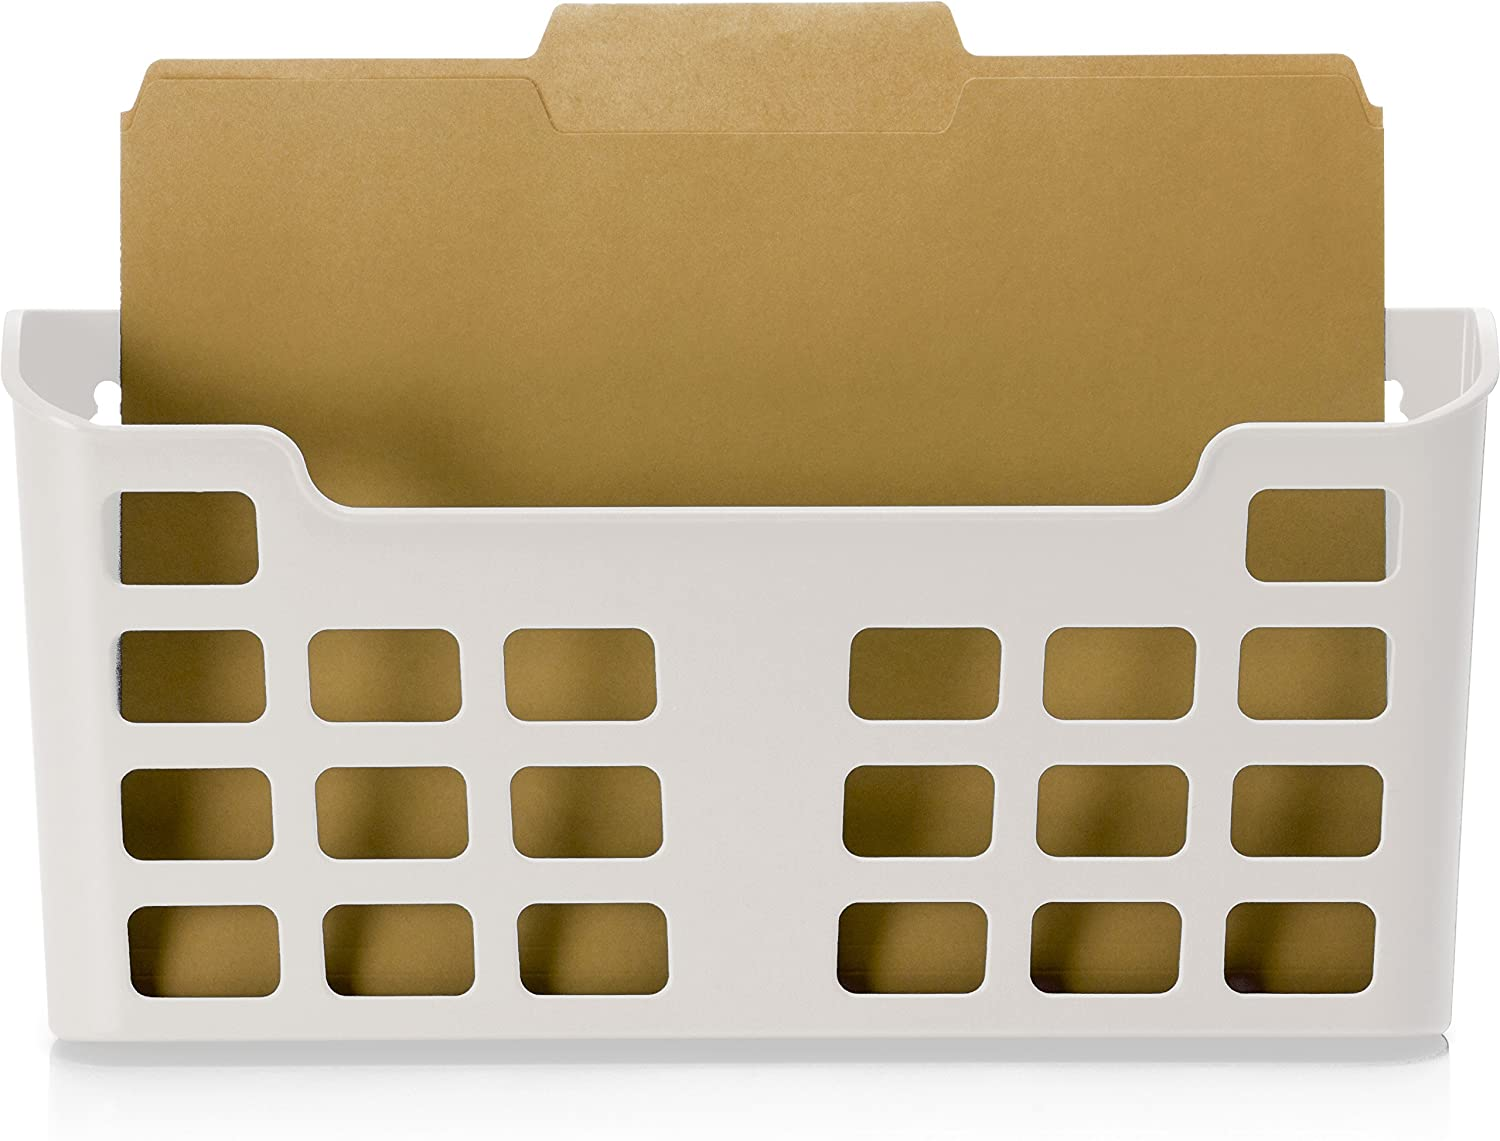 Officemate MagnetPlus Magnetic Letter Size 9 File New arrival White Cheap sale Pocket